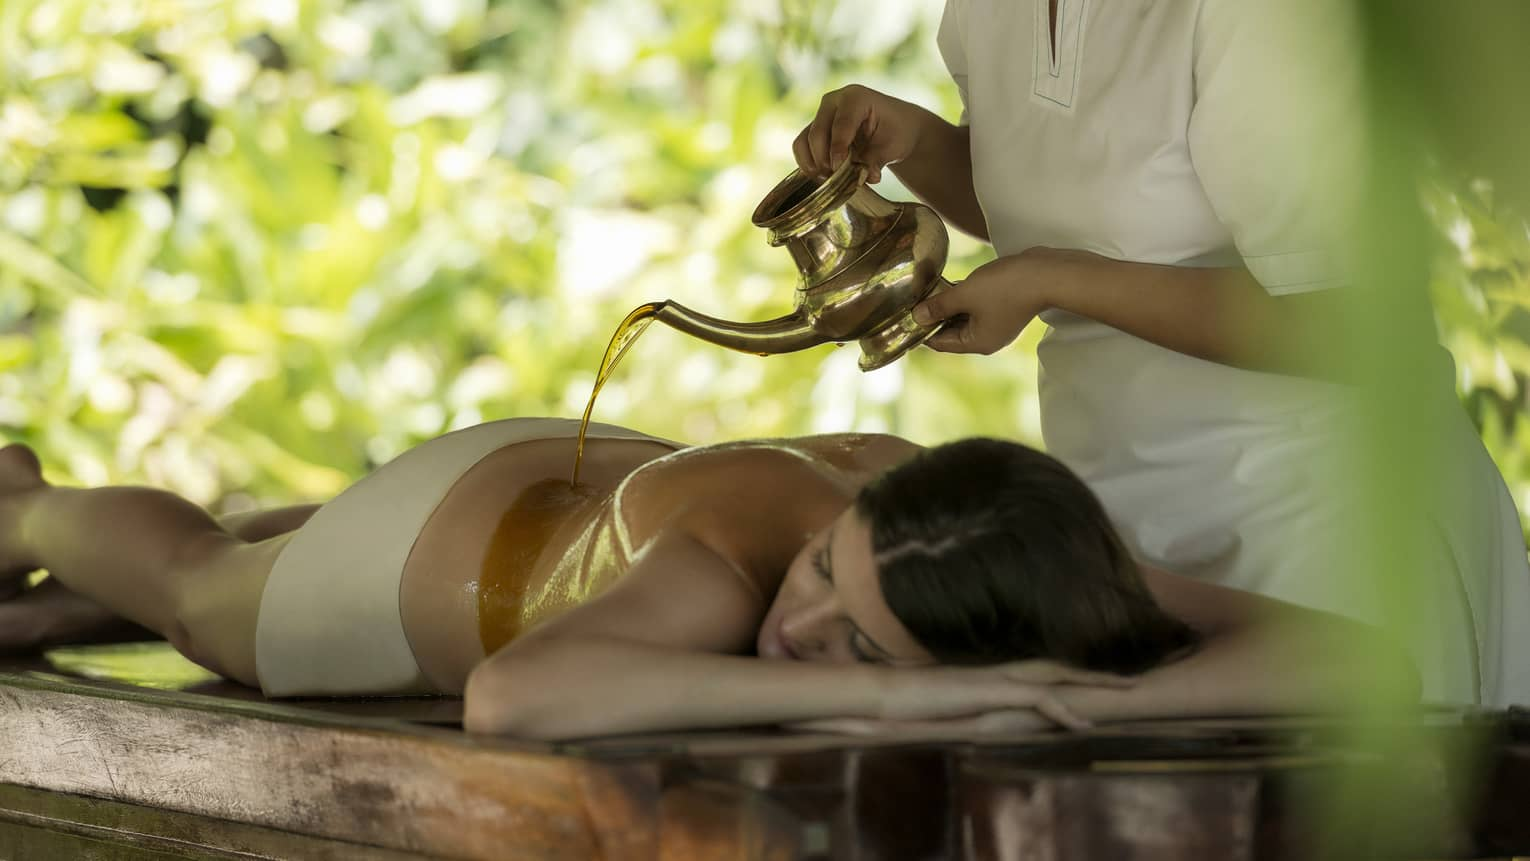 Spa staff pours hot oil from teapot over woman's bare shoulders as she lies on table